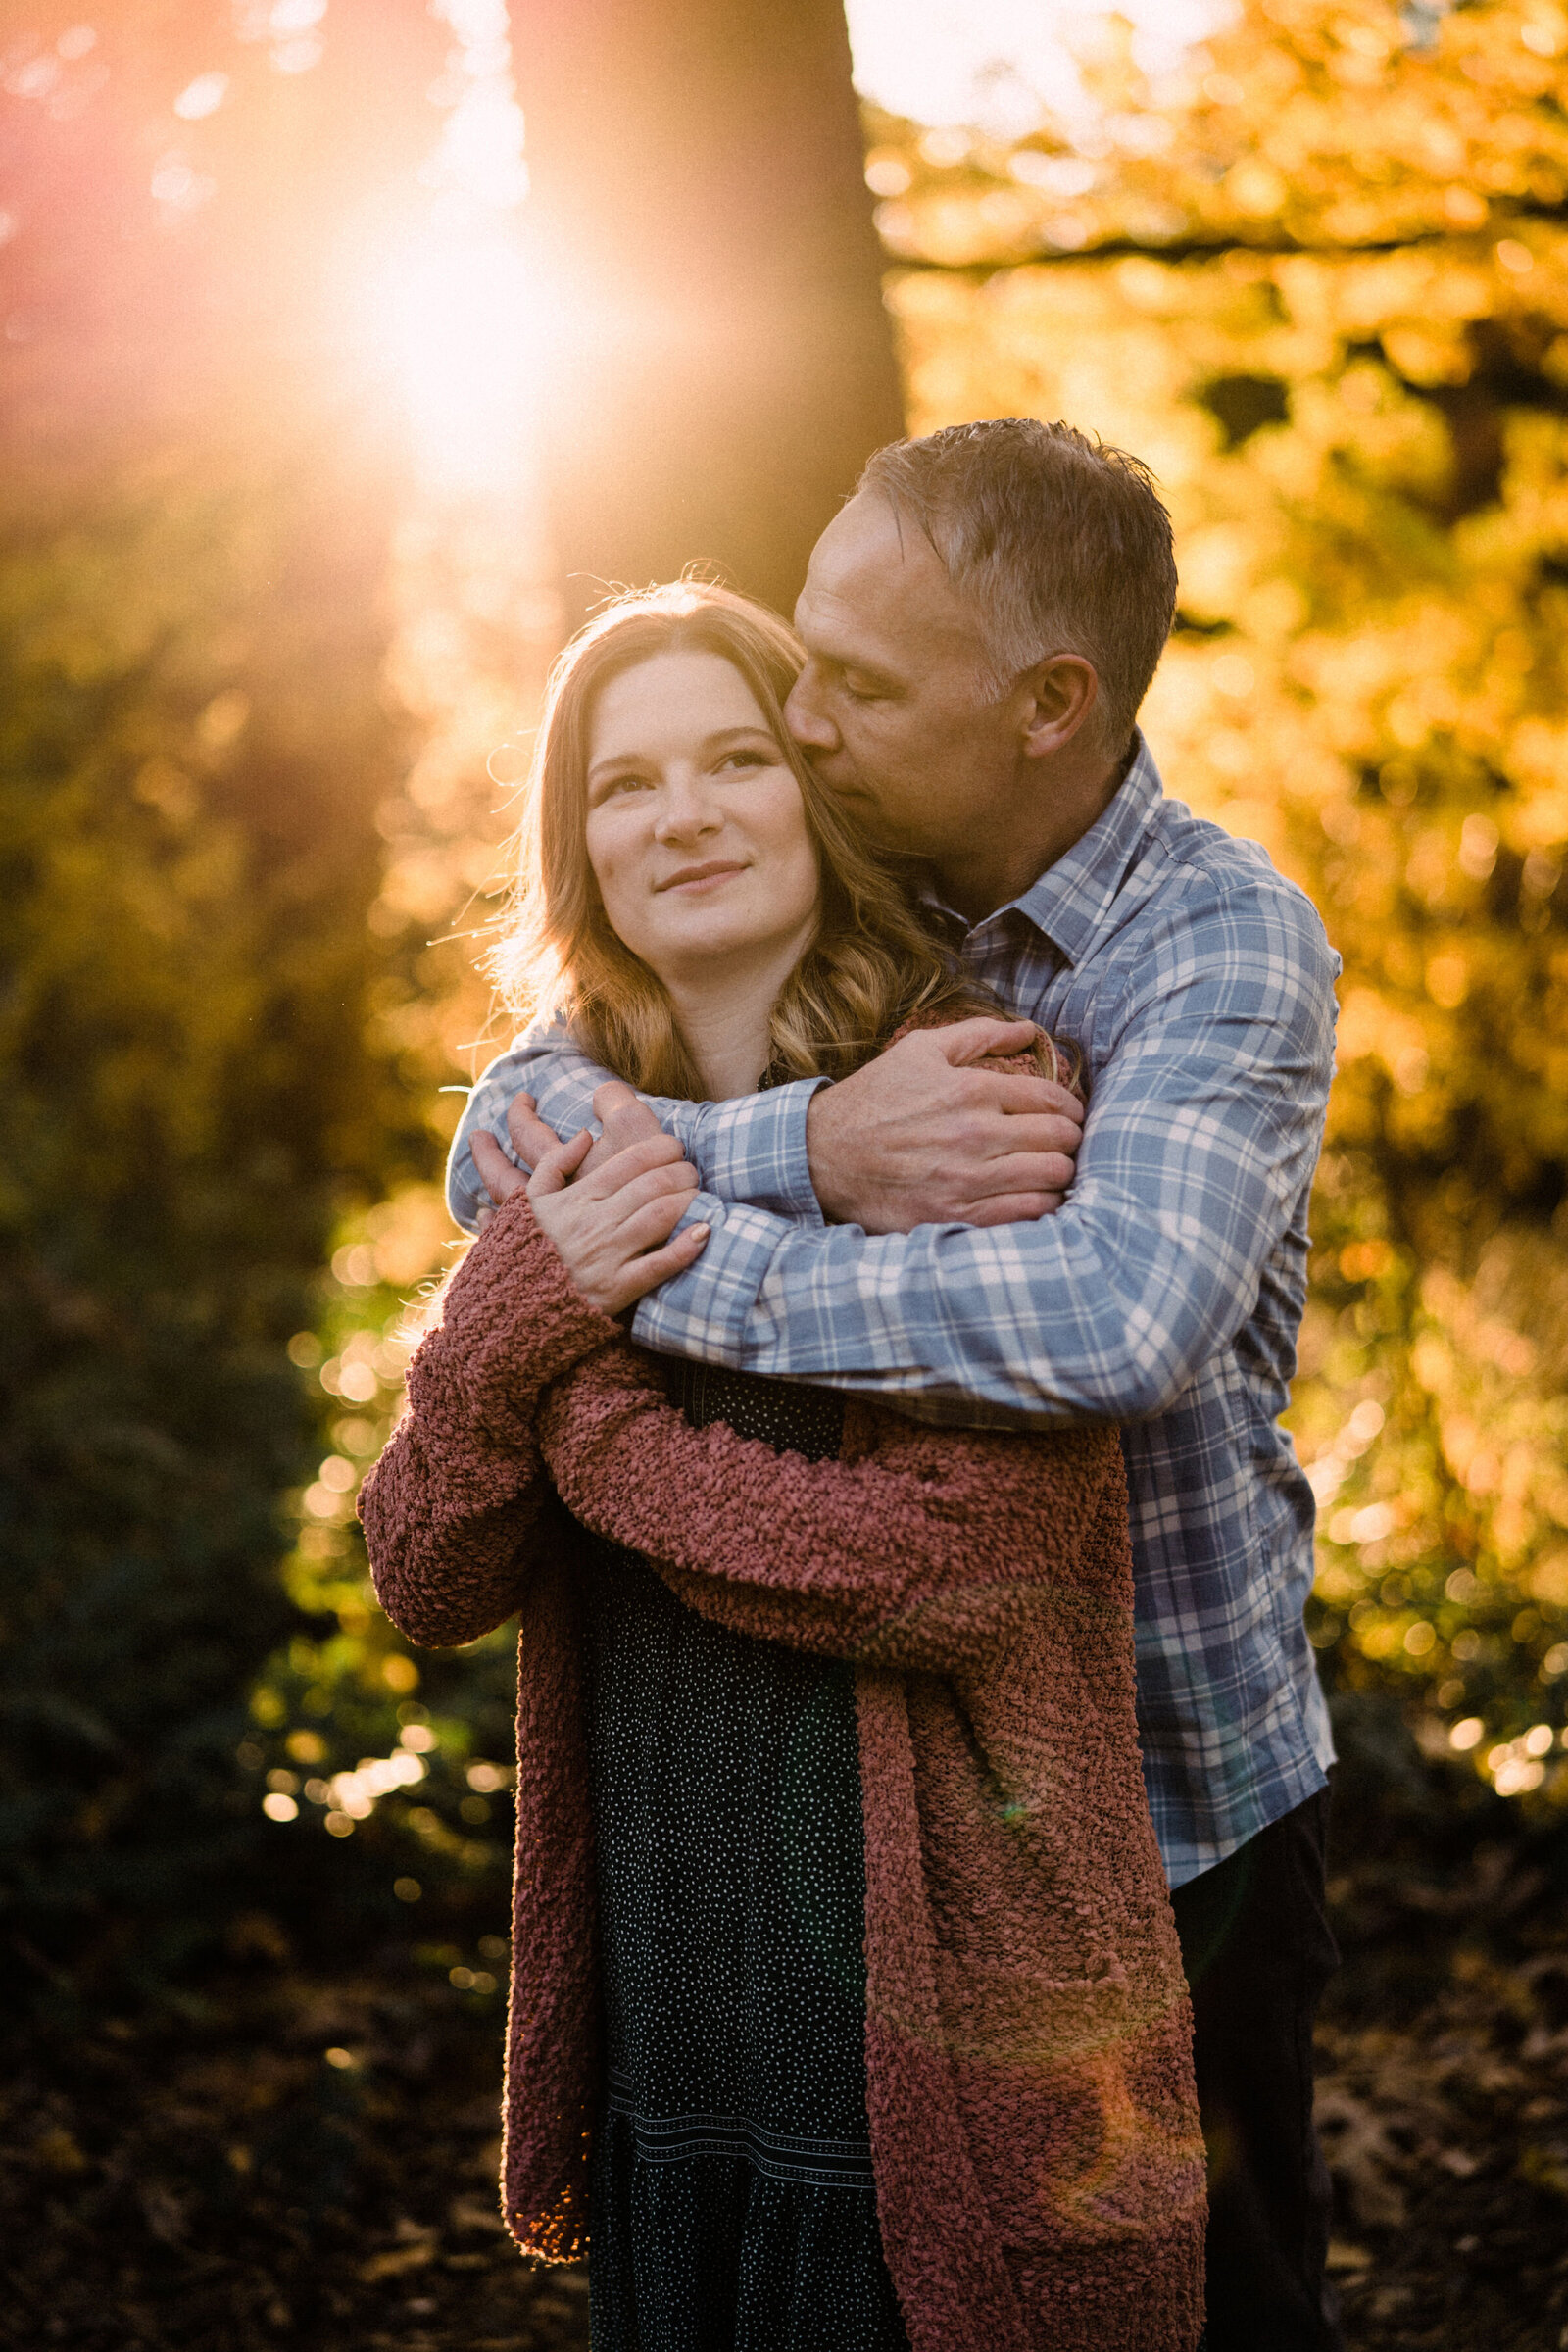 Romantic couple at UW arboretum one of the best spots in seattle for engagement photos